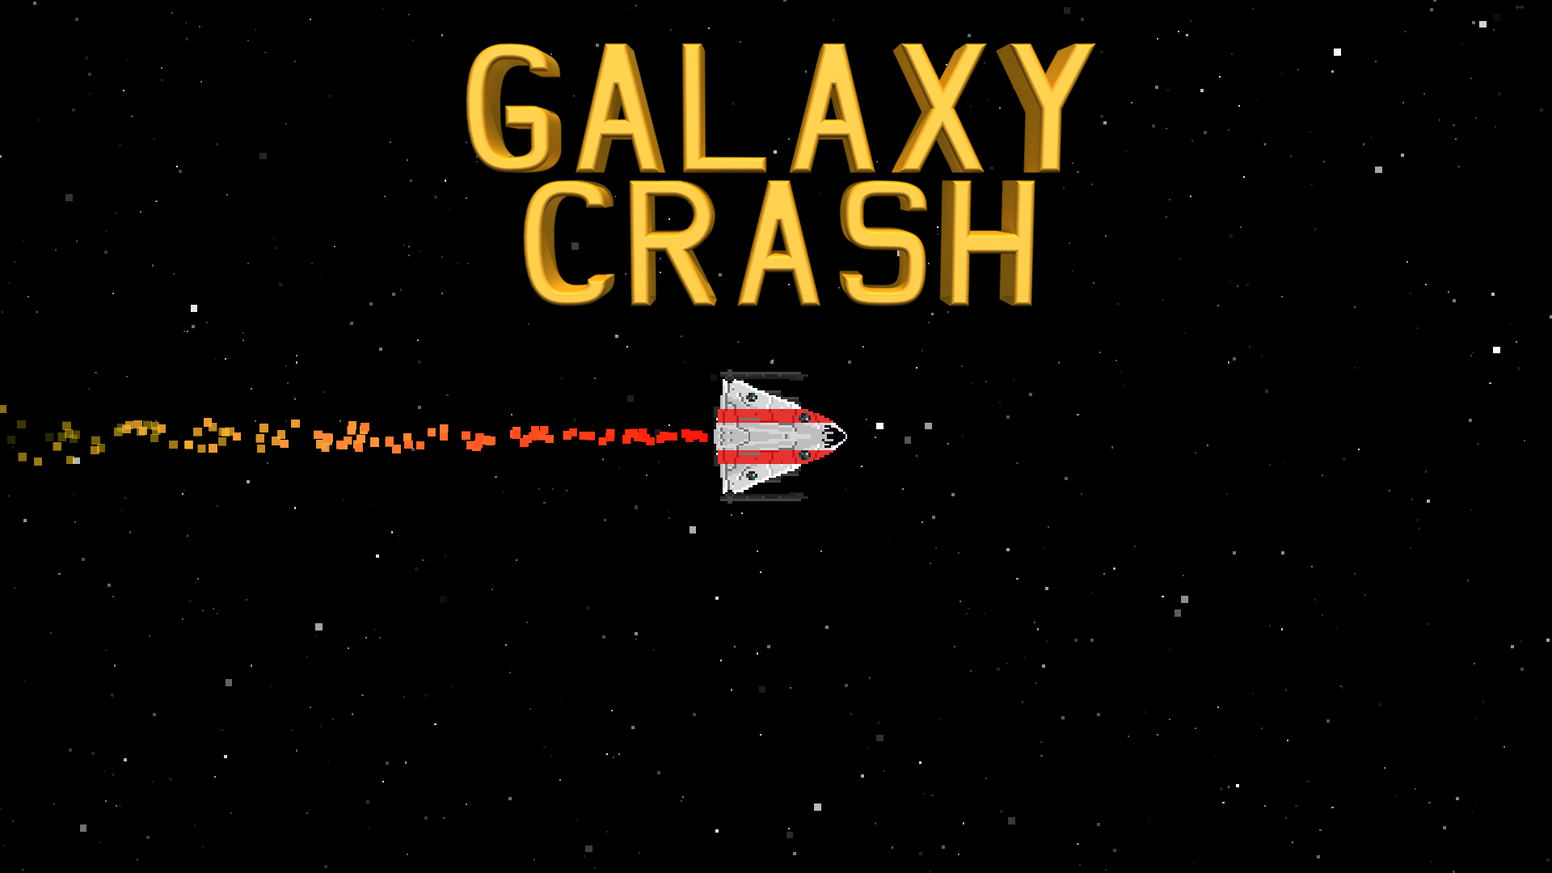 Galaxy Crash is a 2D Space Epic in which you must find a way to stop the impending destruction of the galaxy.